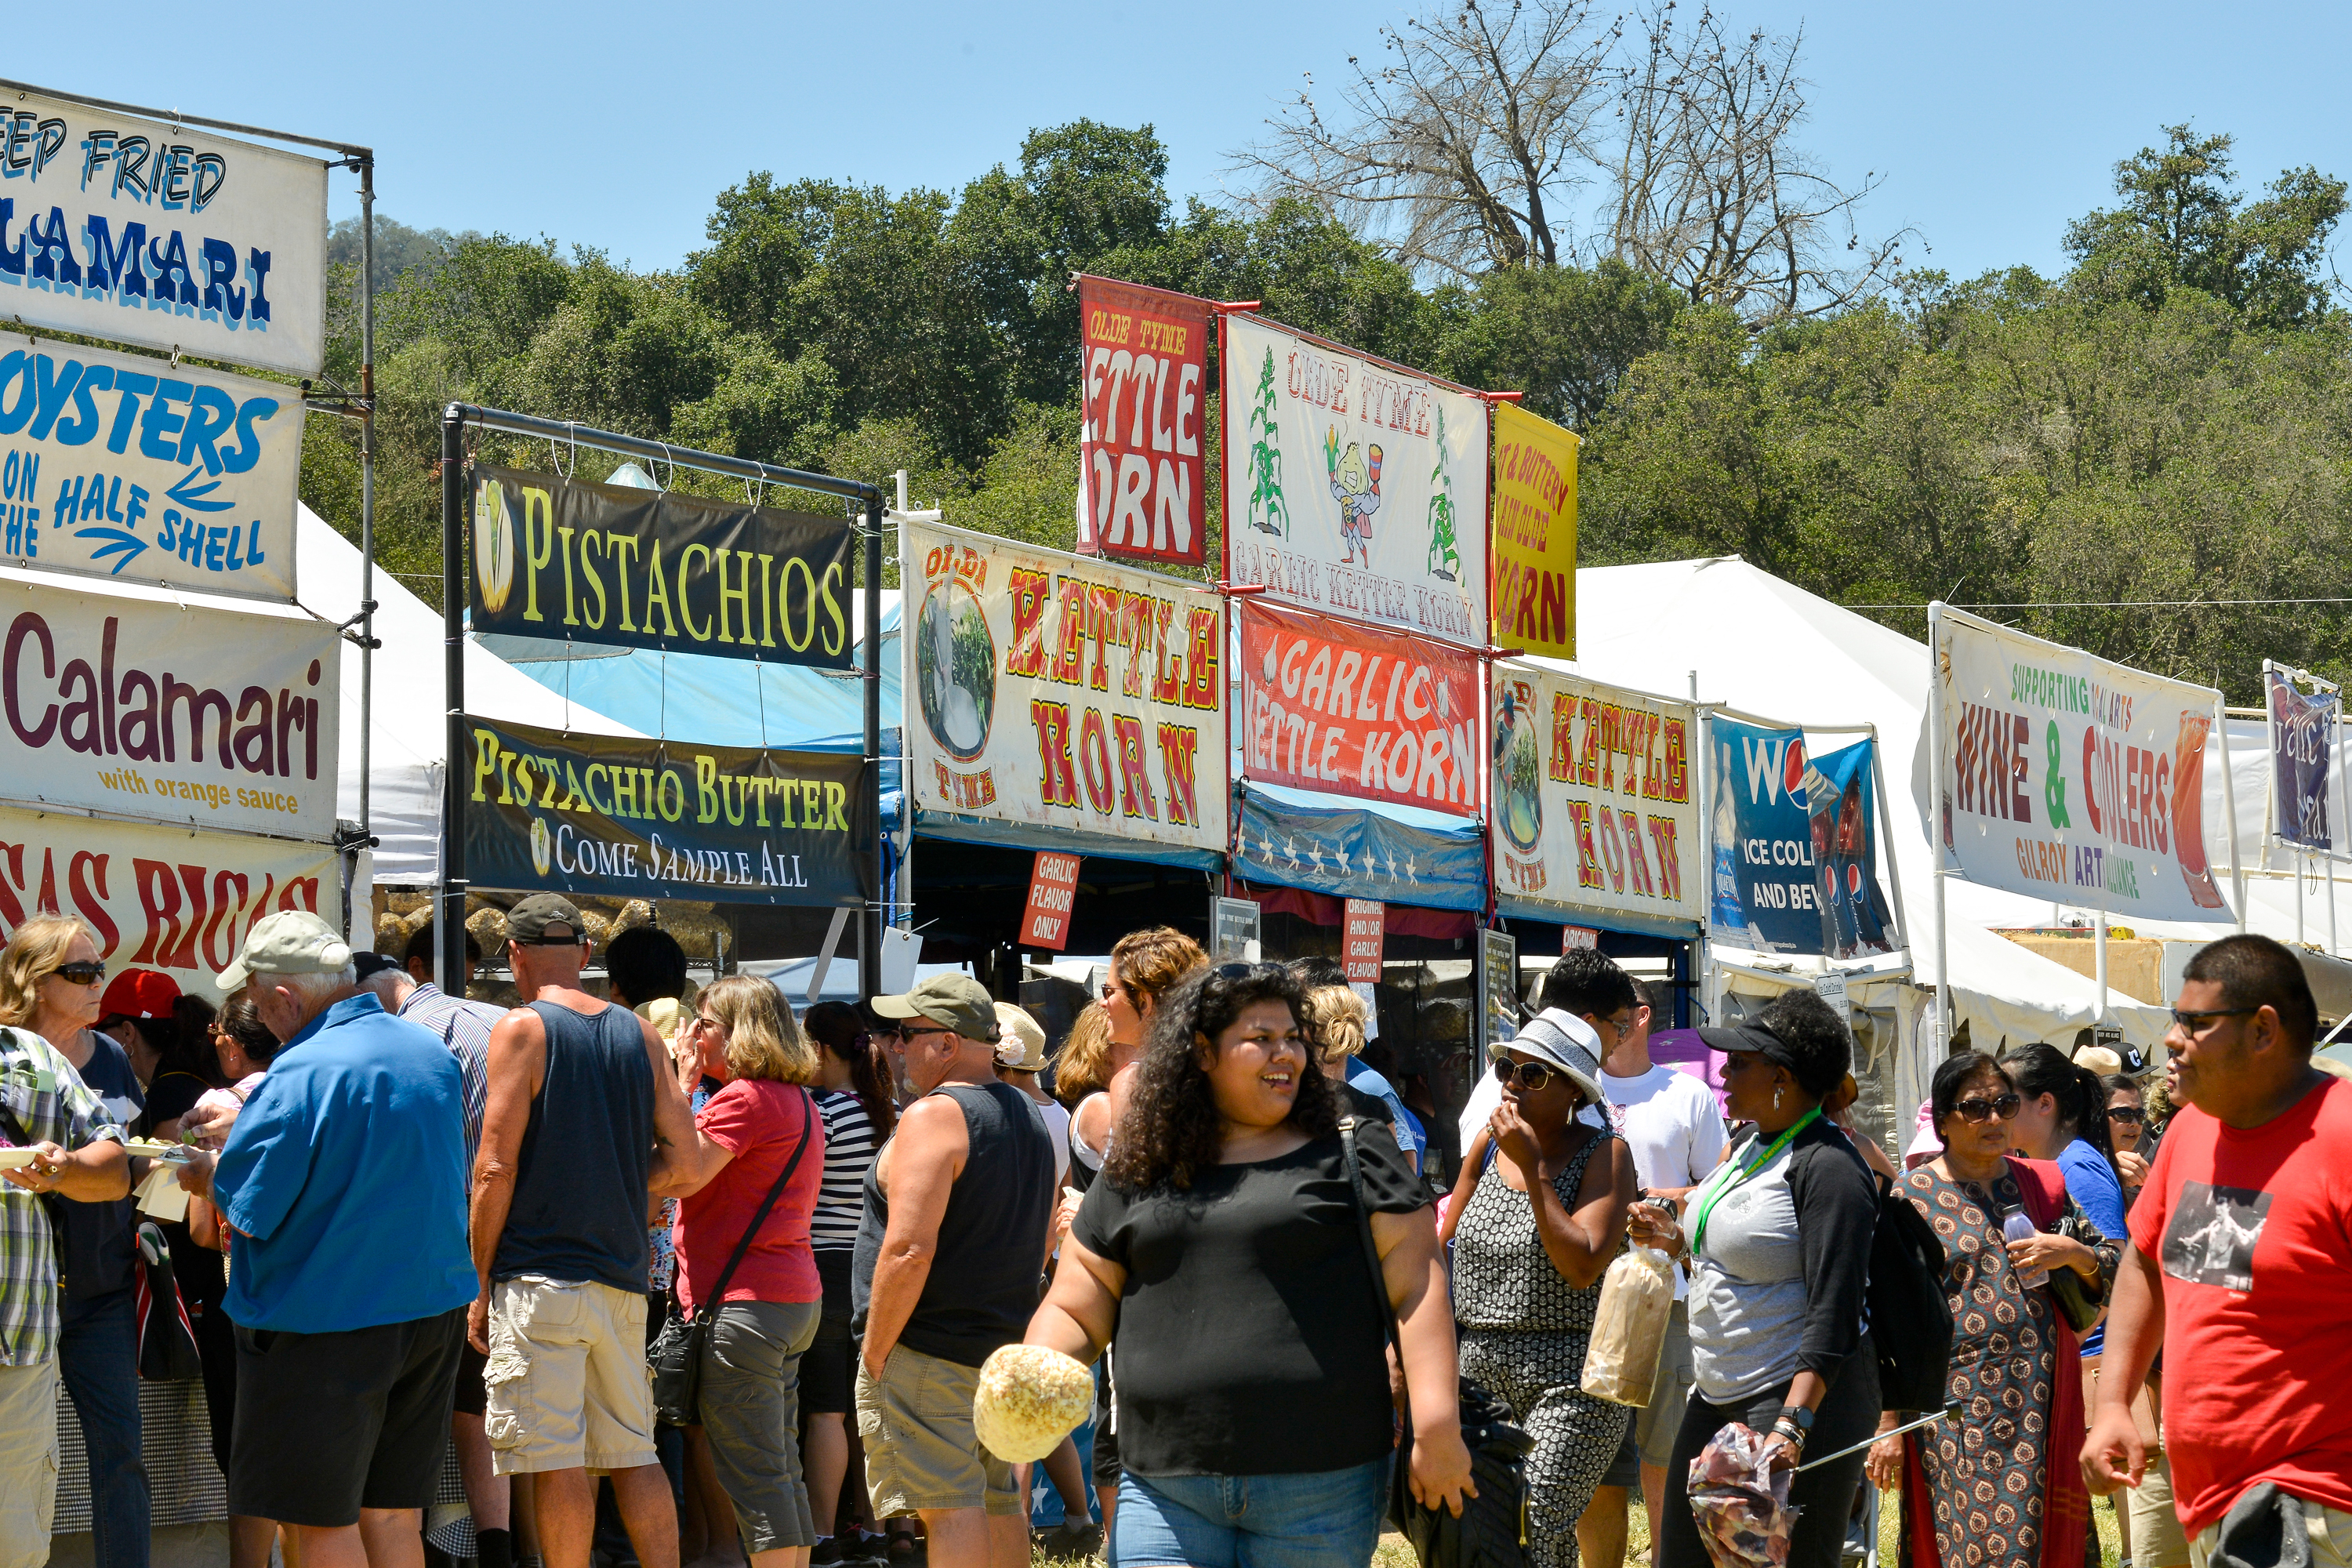 Shooting at the Gilroy Garlic Festival leaves 4 dead and 15 wounded